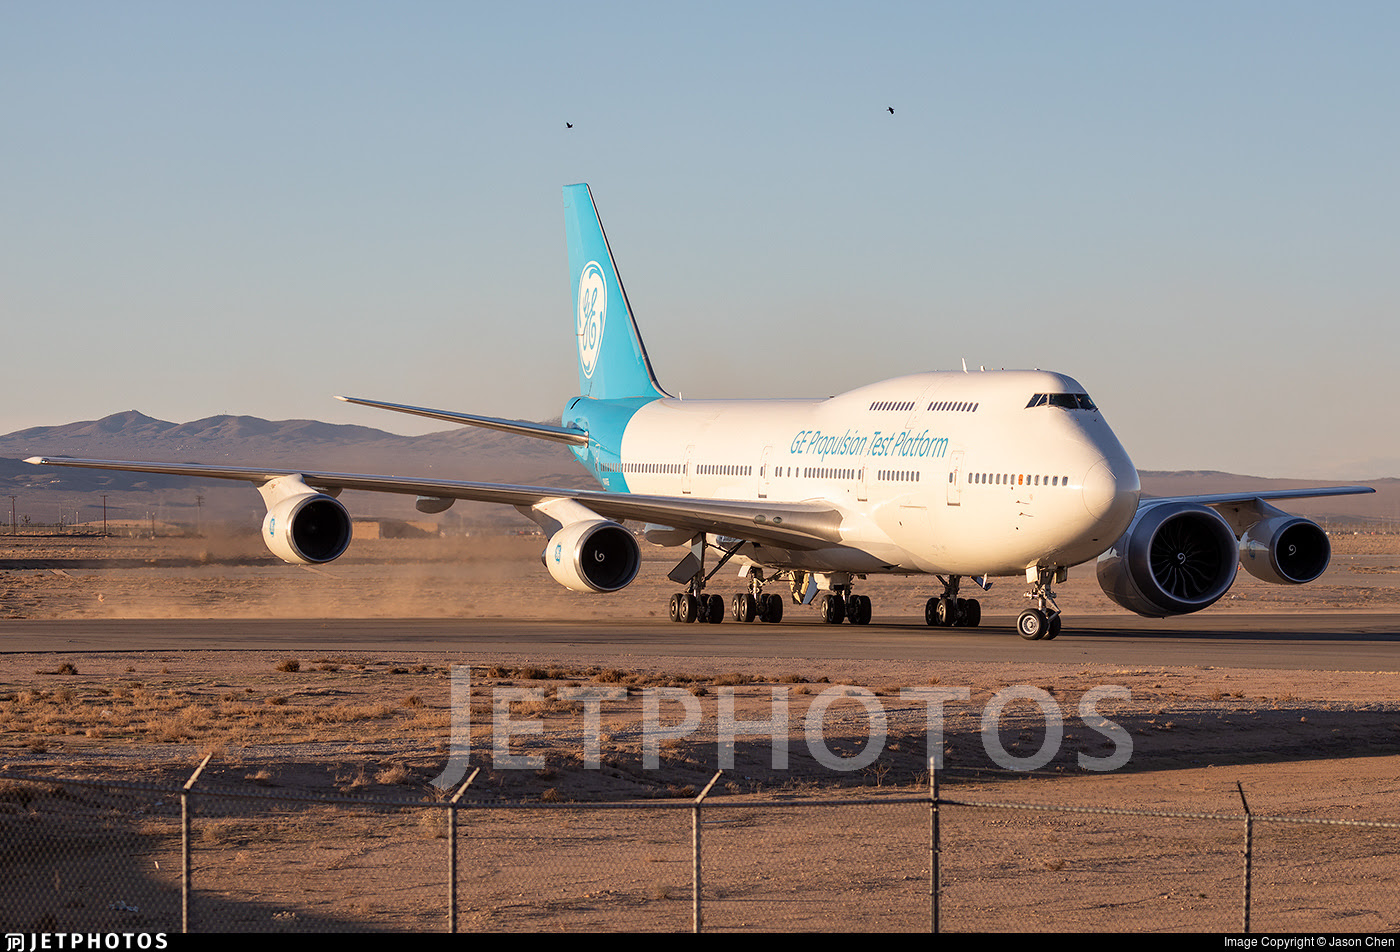 The GE Aviation 747 carrying the GE9X engine